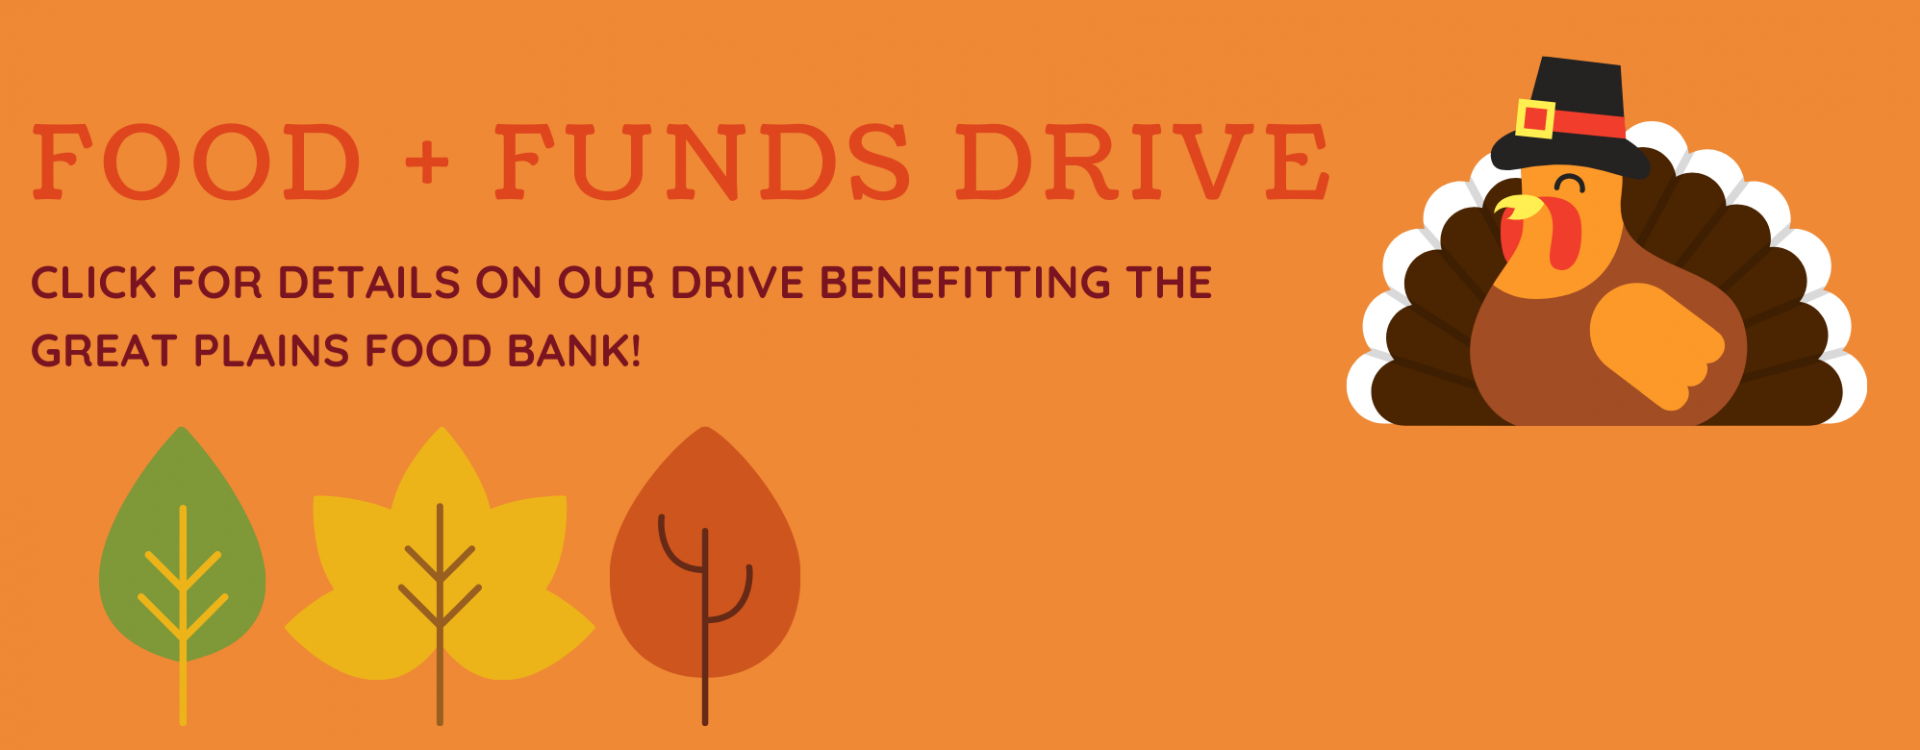 food and funds drive Click for details on our drive benefitting the great plains food bank